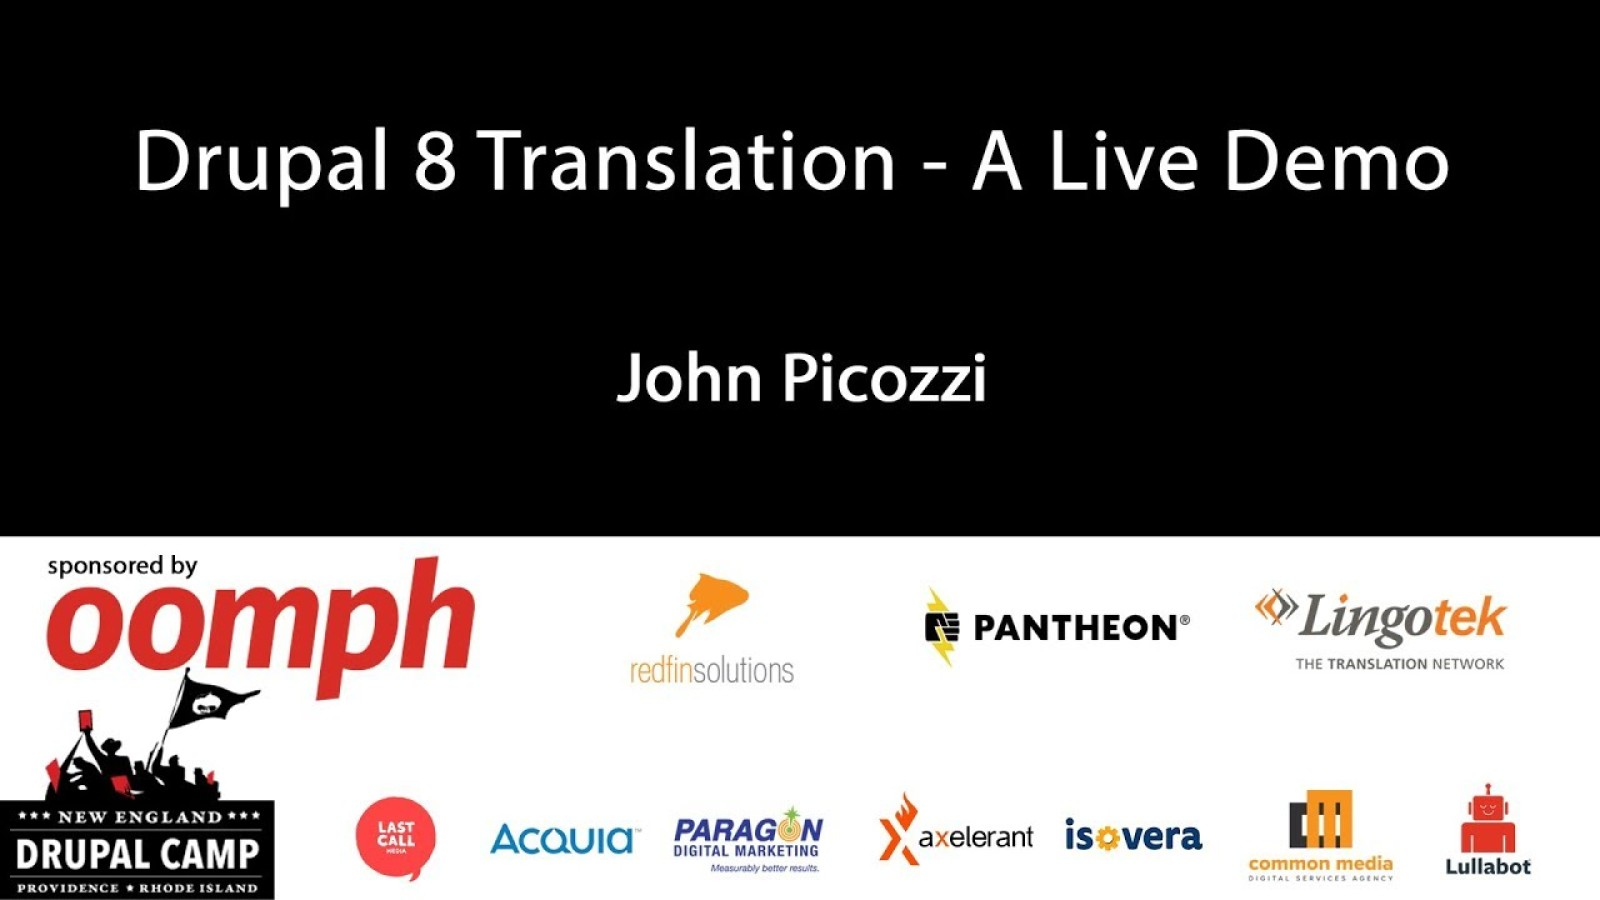 Drupal 8 Translation - A Live Demo